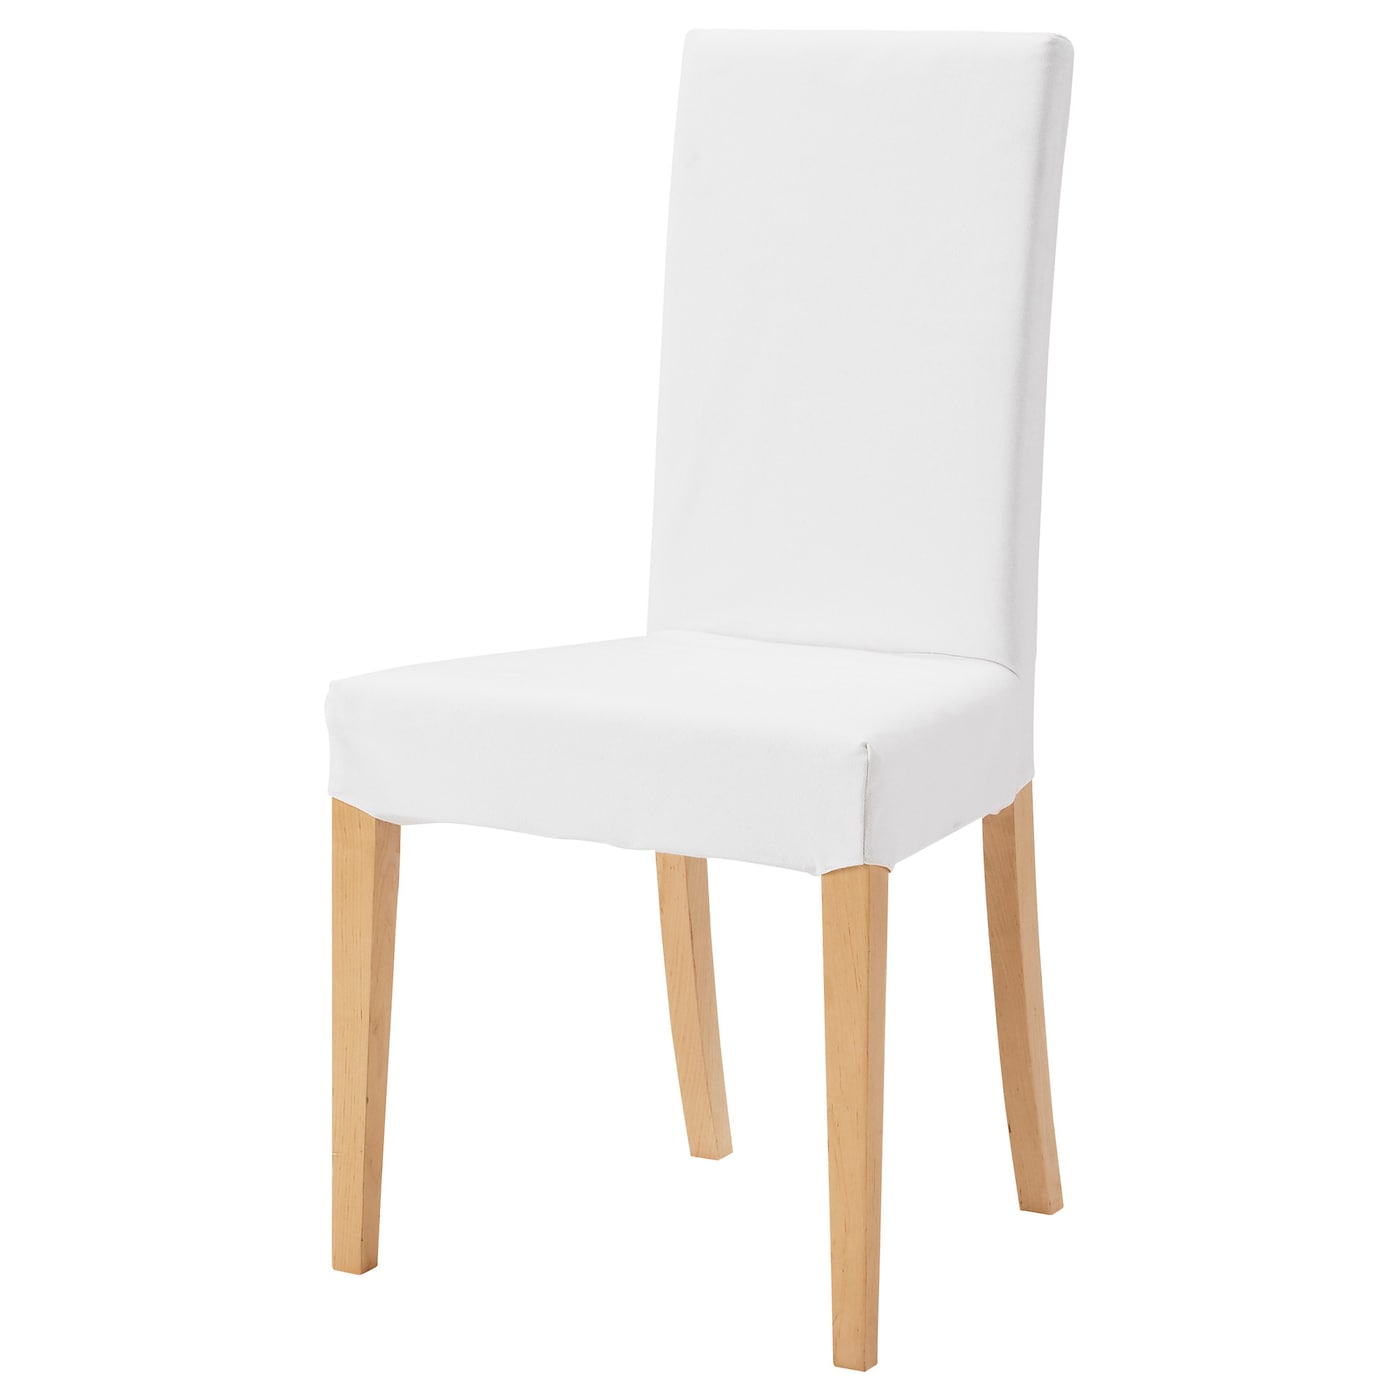 IKEA HARRY chair The cover can be machine washed  The cover can be machine  washed. Chairs   Upholstered   Foldable Dining Chairs   IKEA